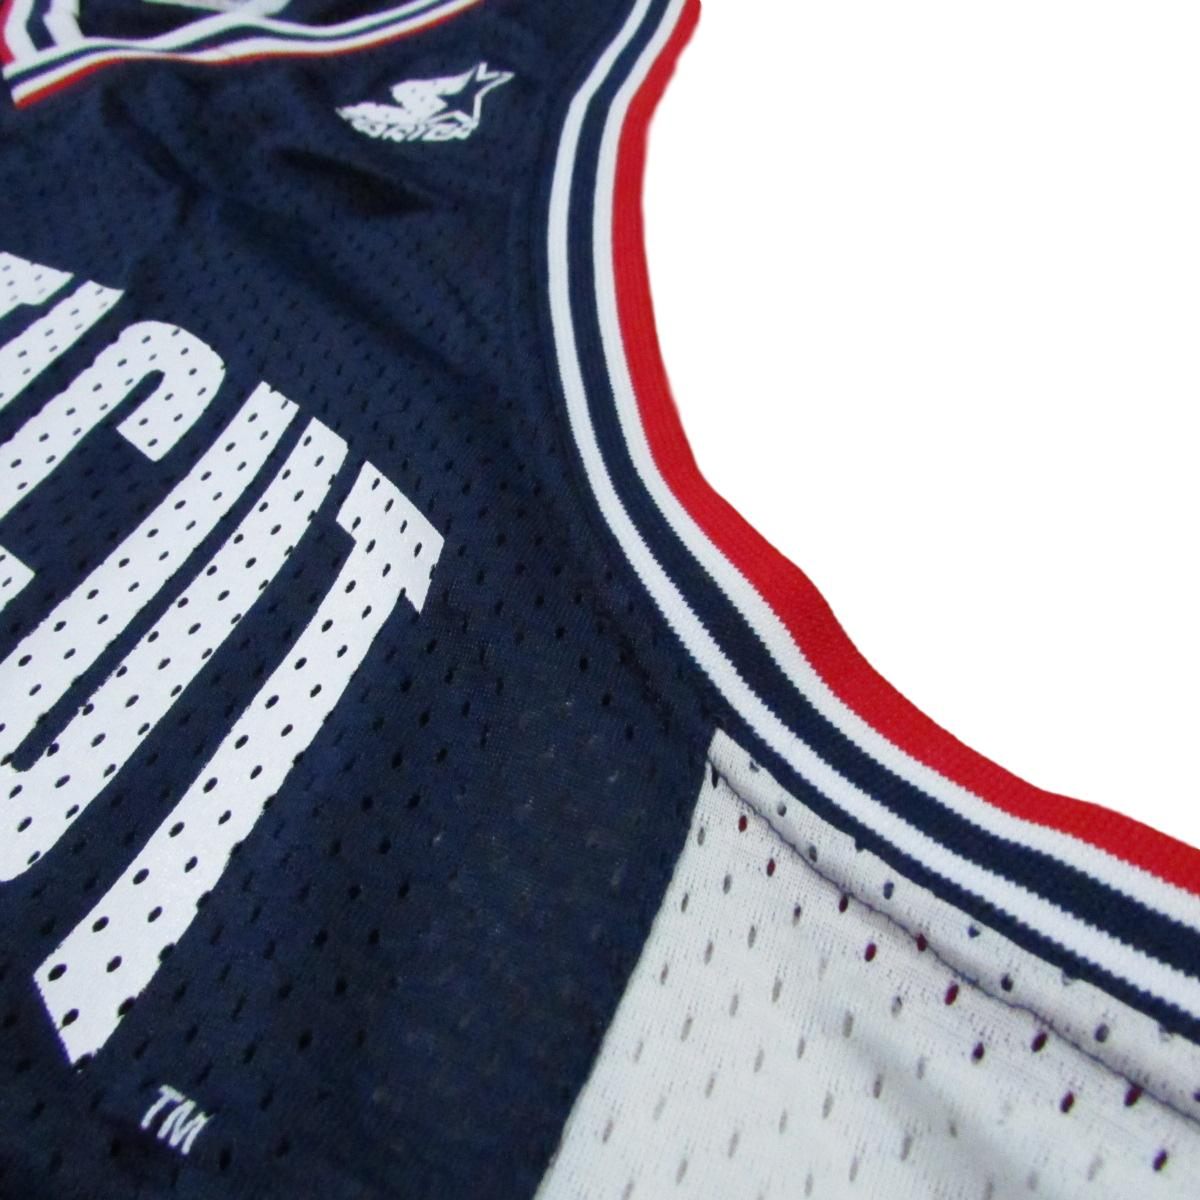 University of Connecticut Uconn Huskies College Basketball Jersey Starter Sz 48